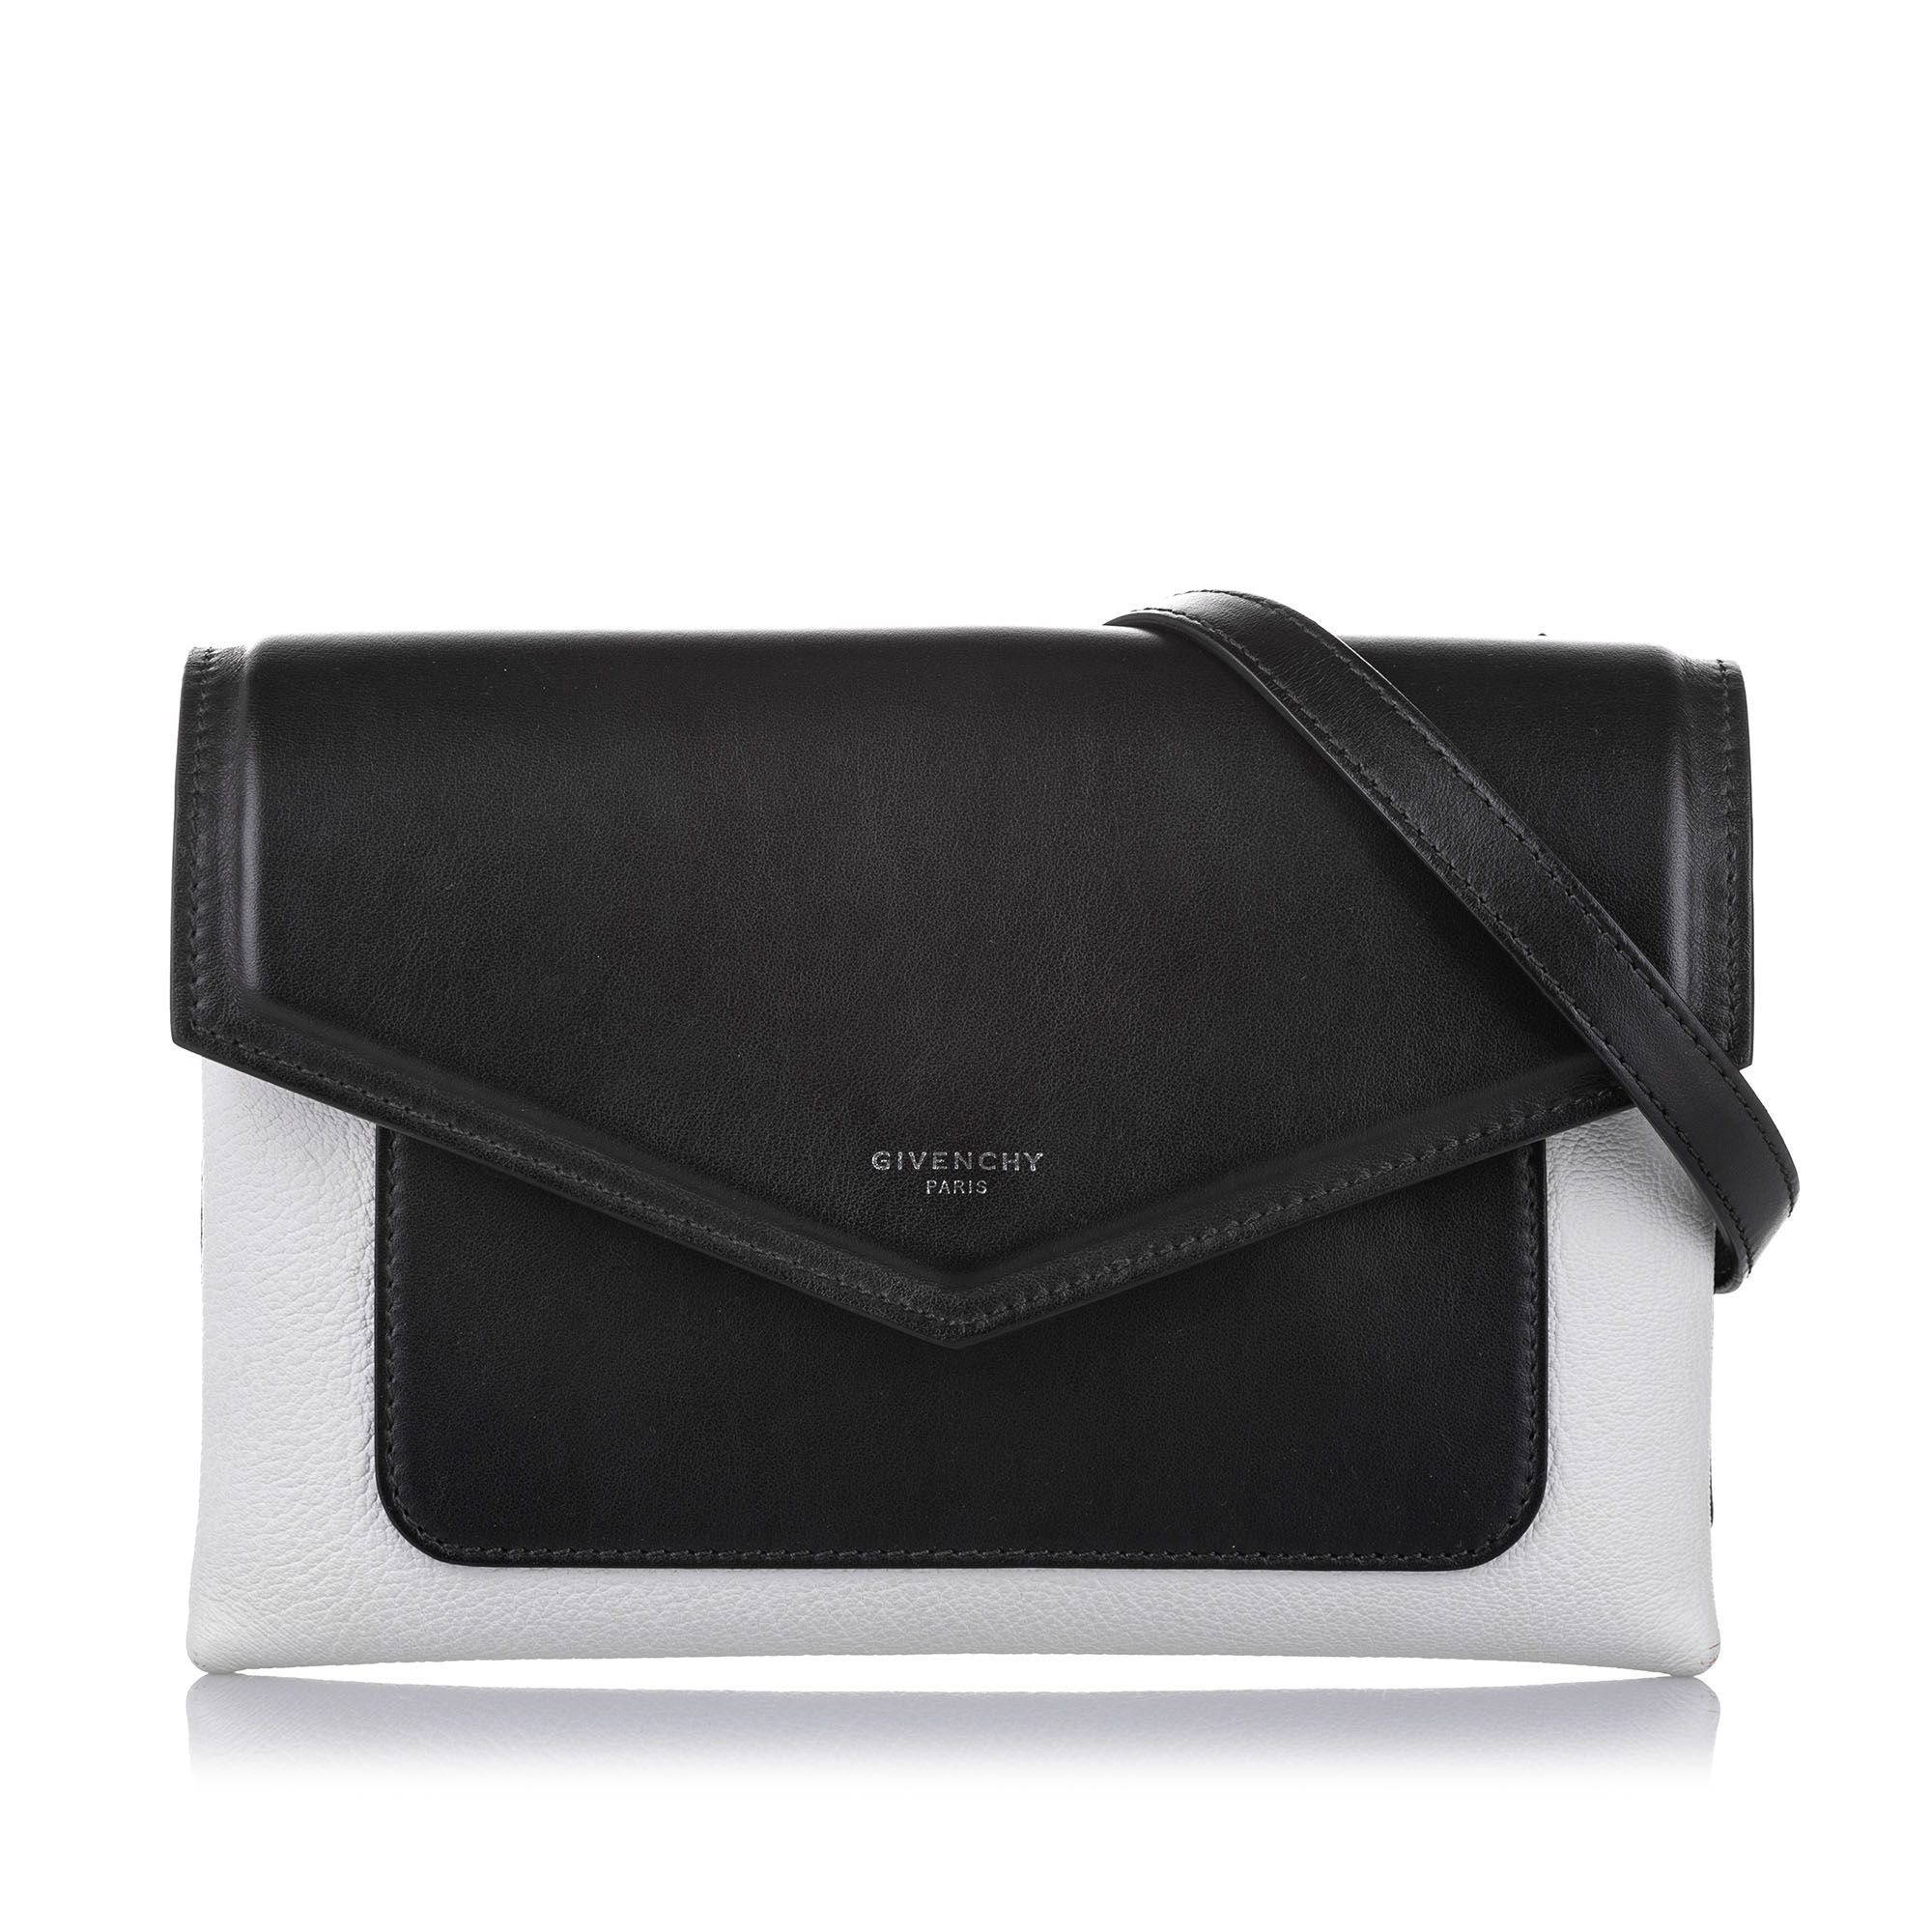 Vintage Givenchy Duetto Leather Crossbody Bag Black